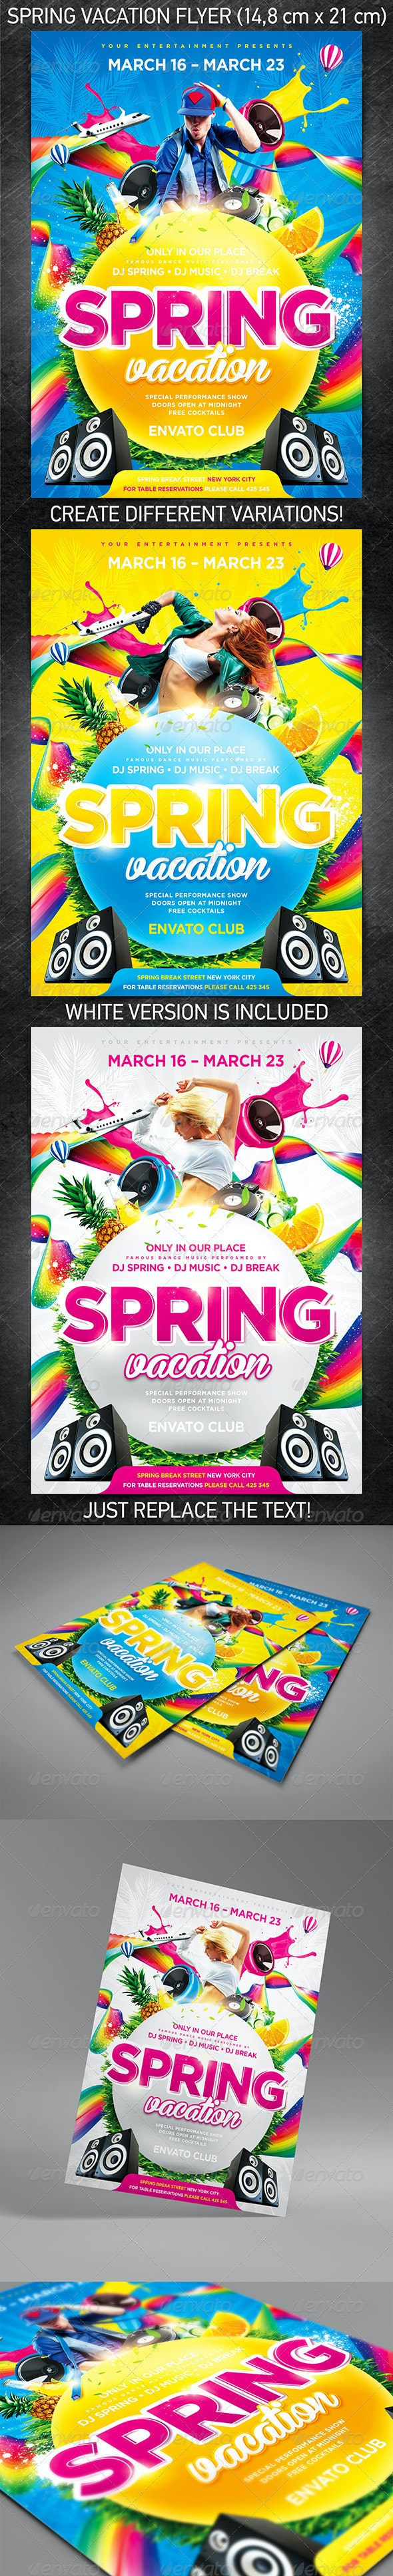 Spring Vacation Party Flyer - Events Flyers